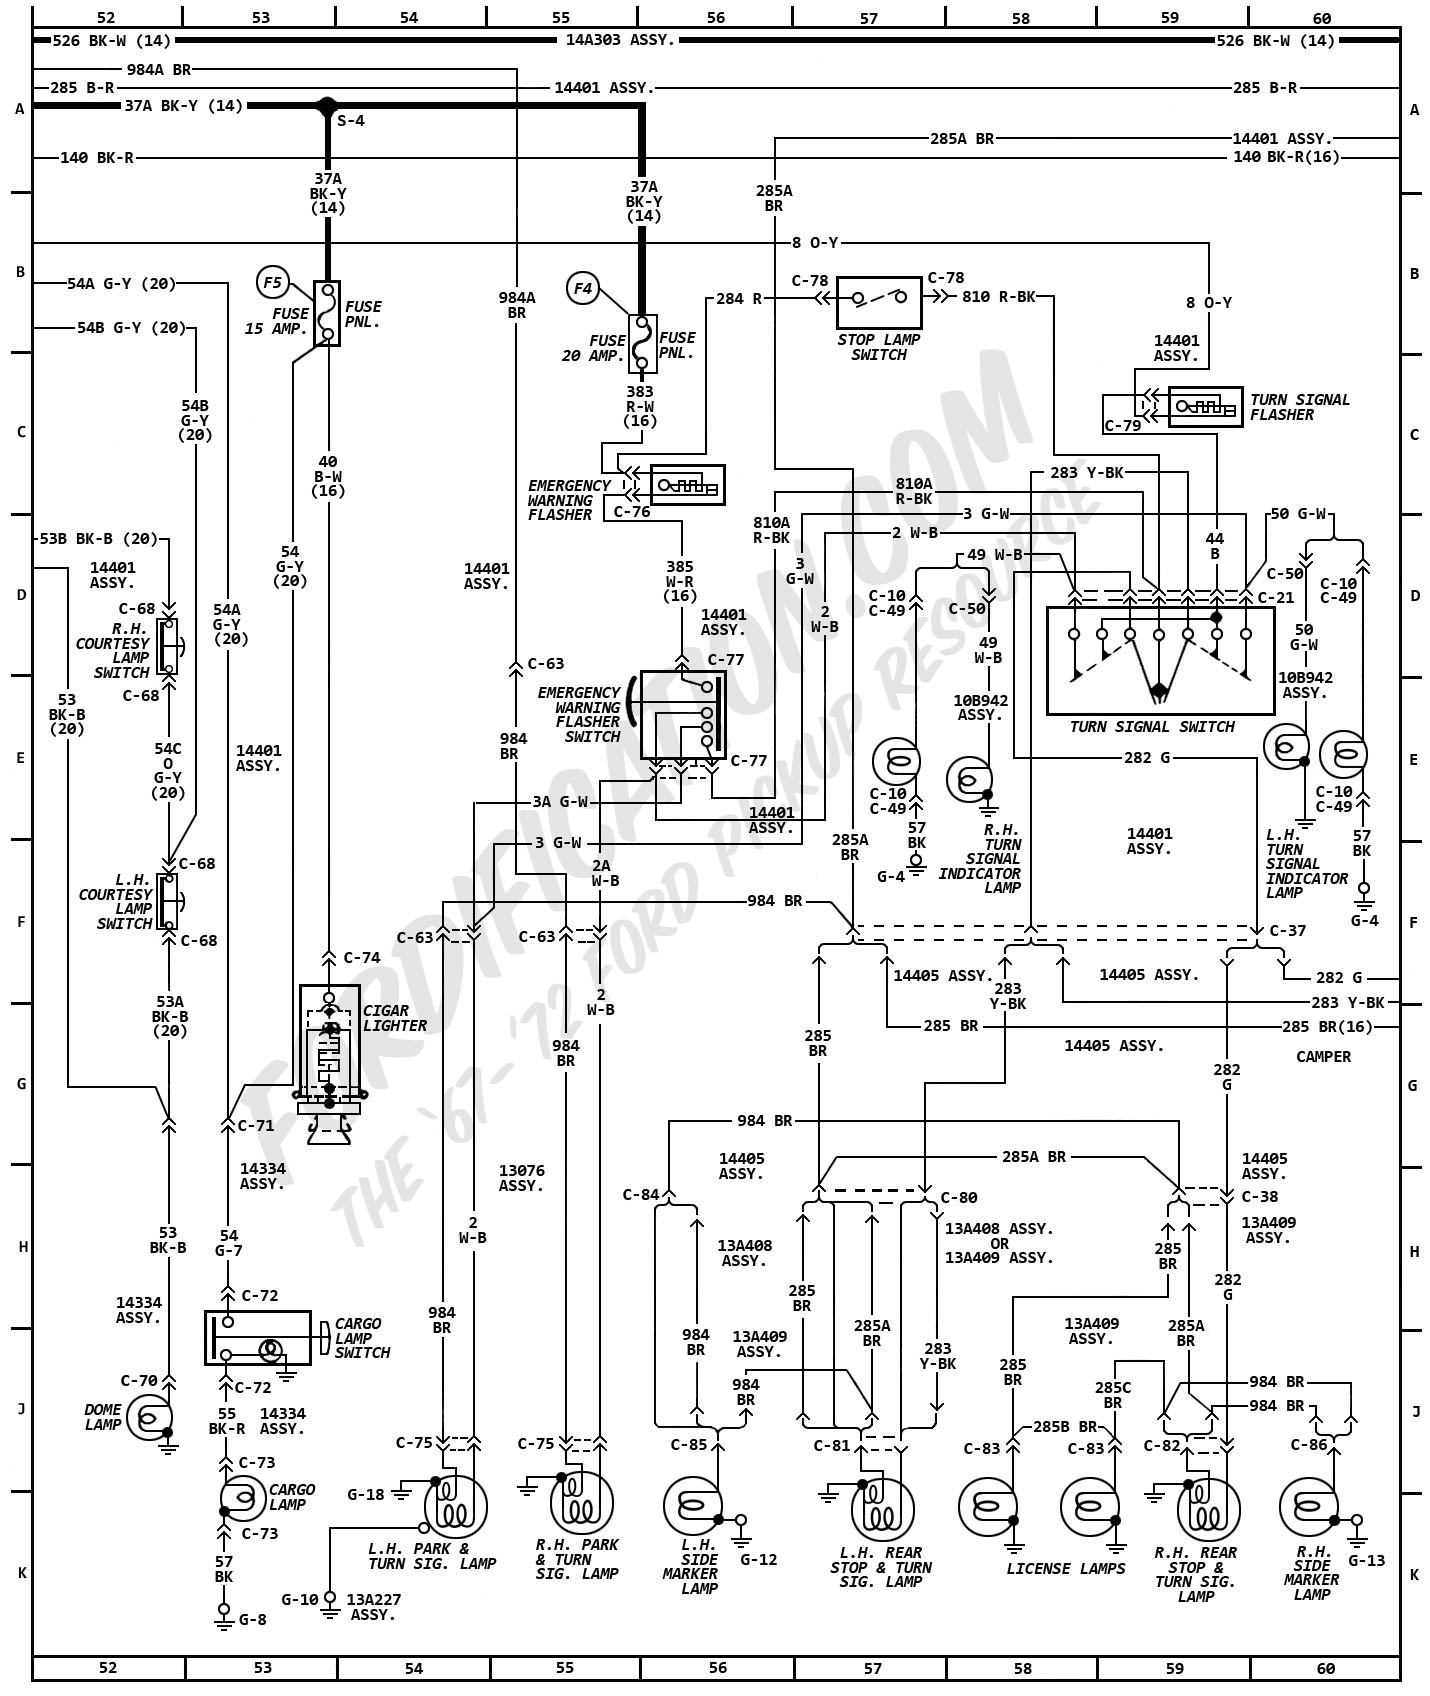 1972 Ford Ranchero Wiring Diagrams List Of Schematic Circuit Diagram F250 Ignition Simple Rh David Huggett Co Uk 1970